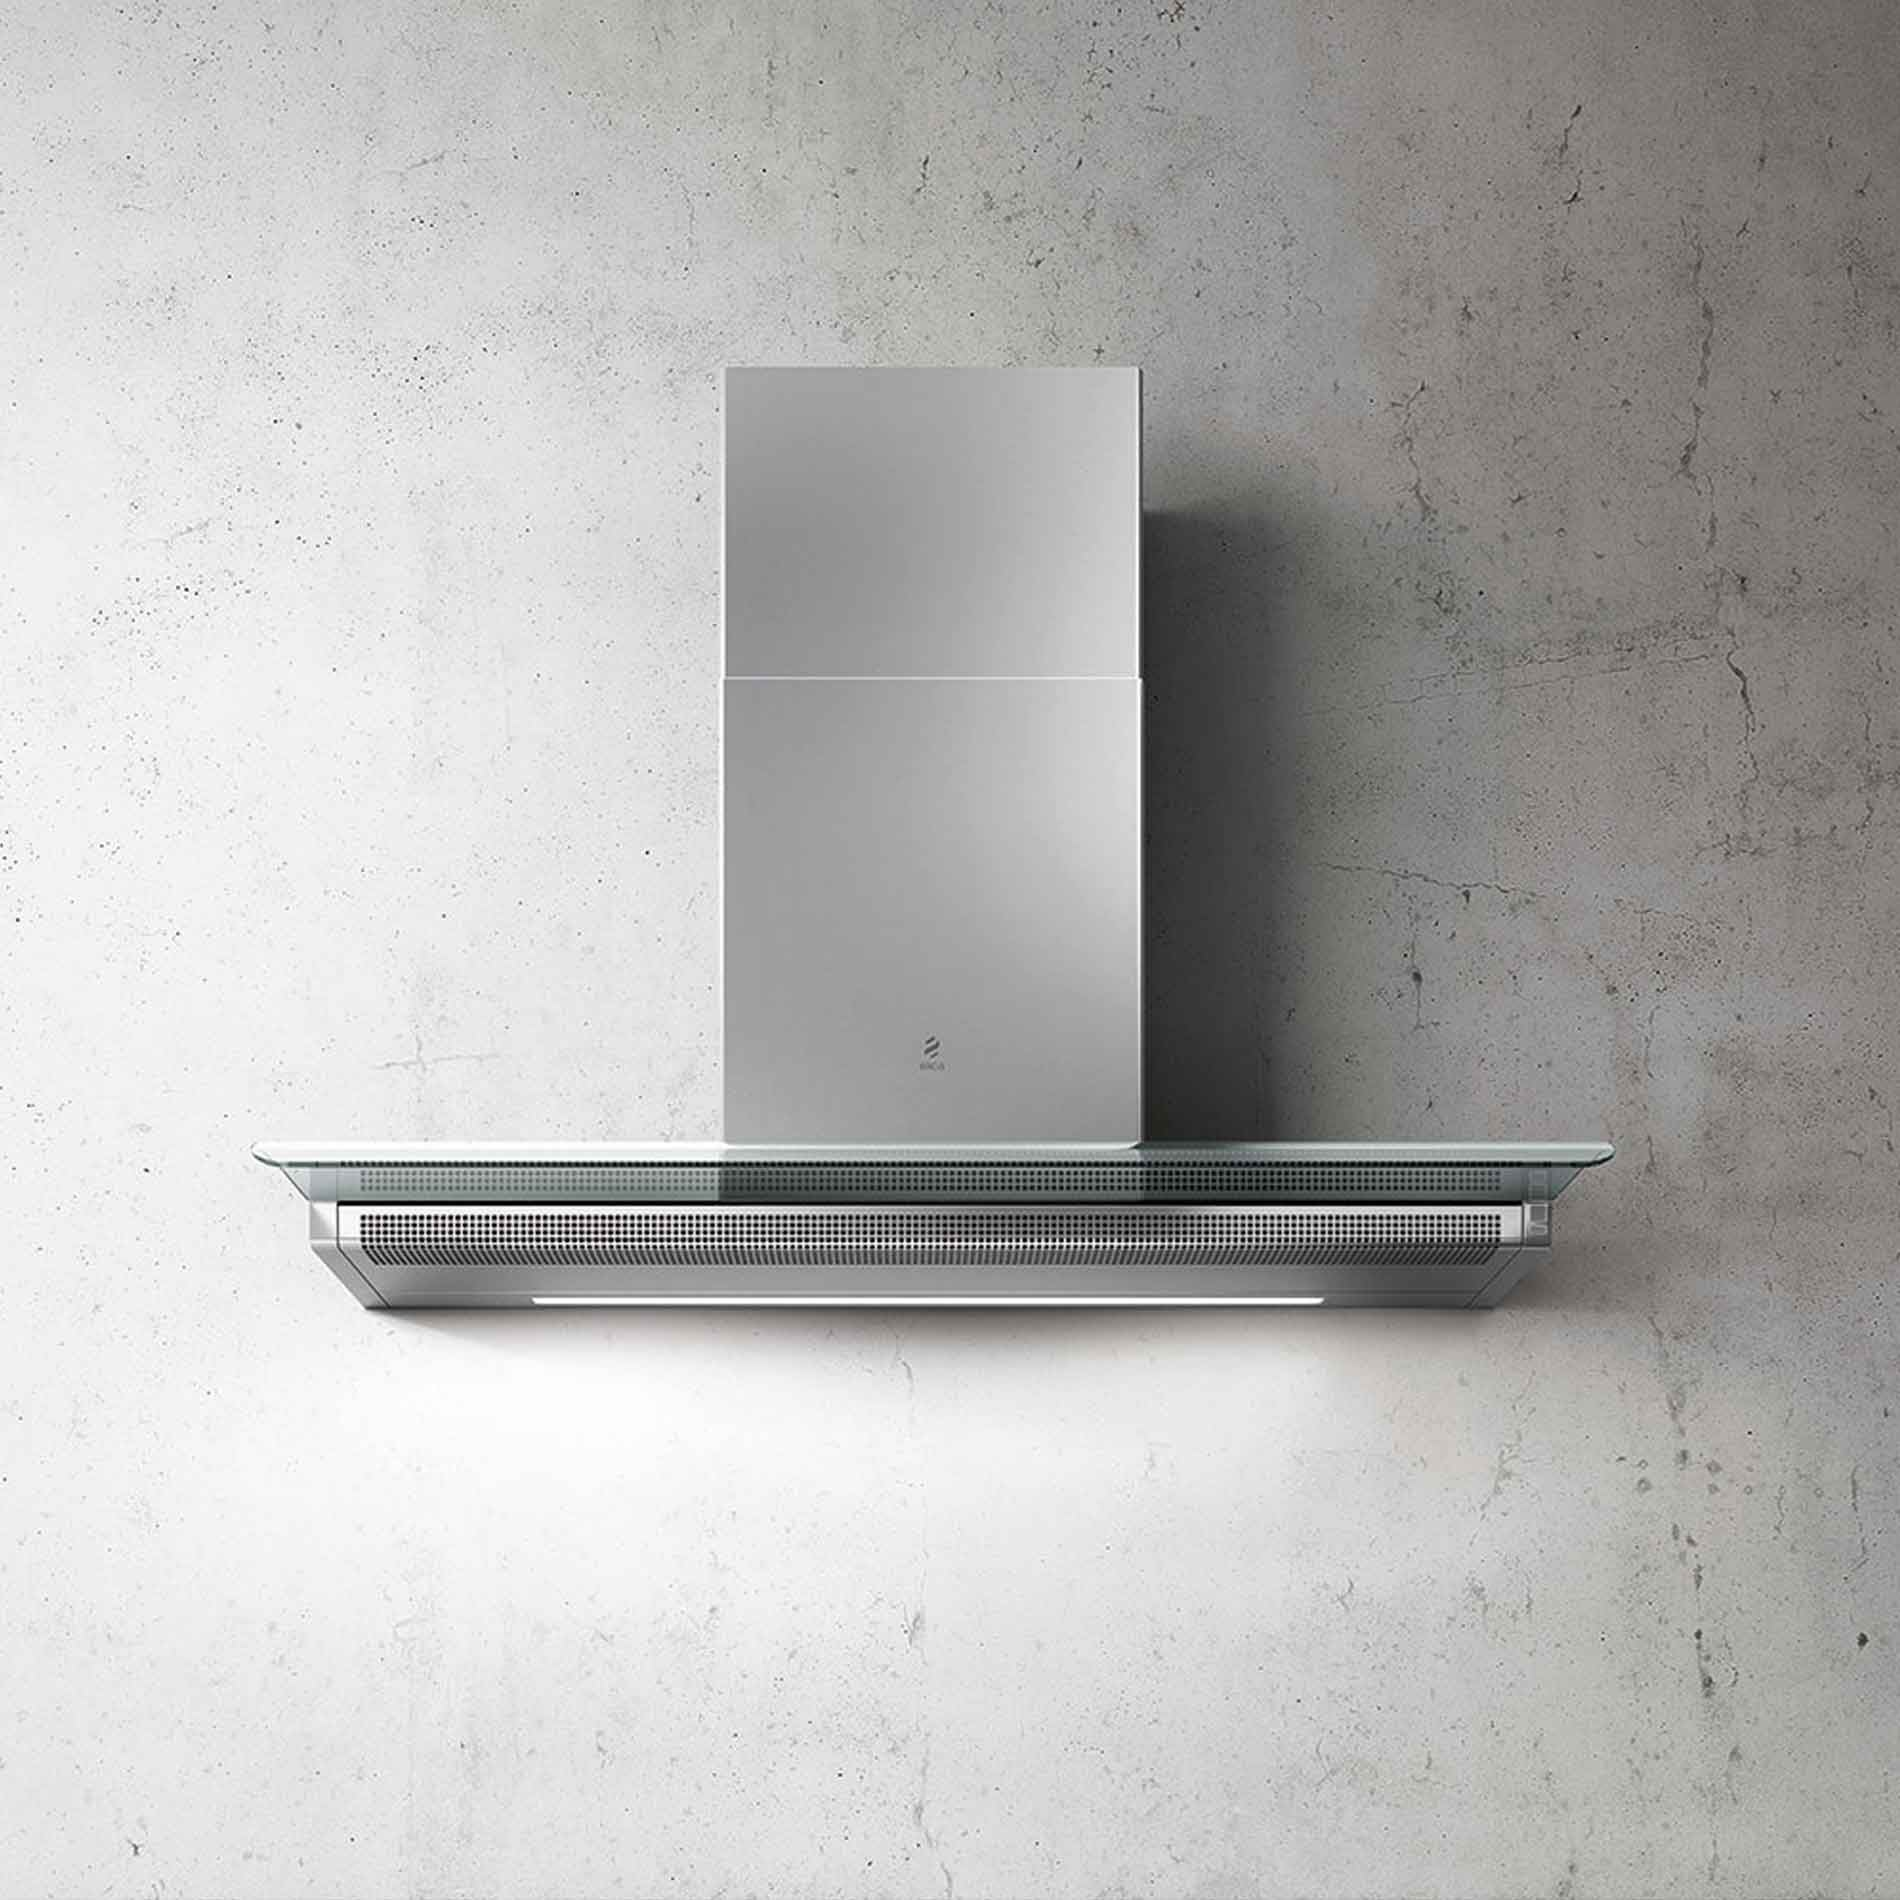 Elica Serendipity 90 Iconic Wall Hood Appliance Source